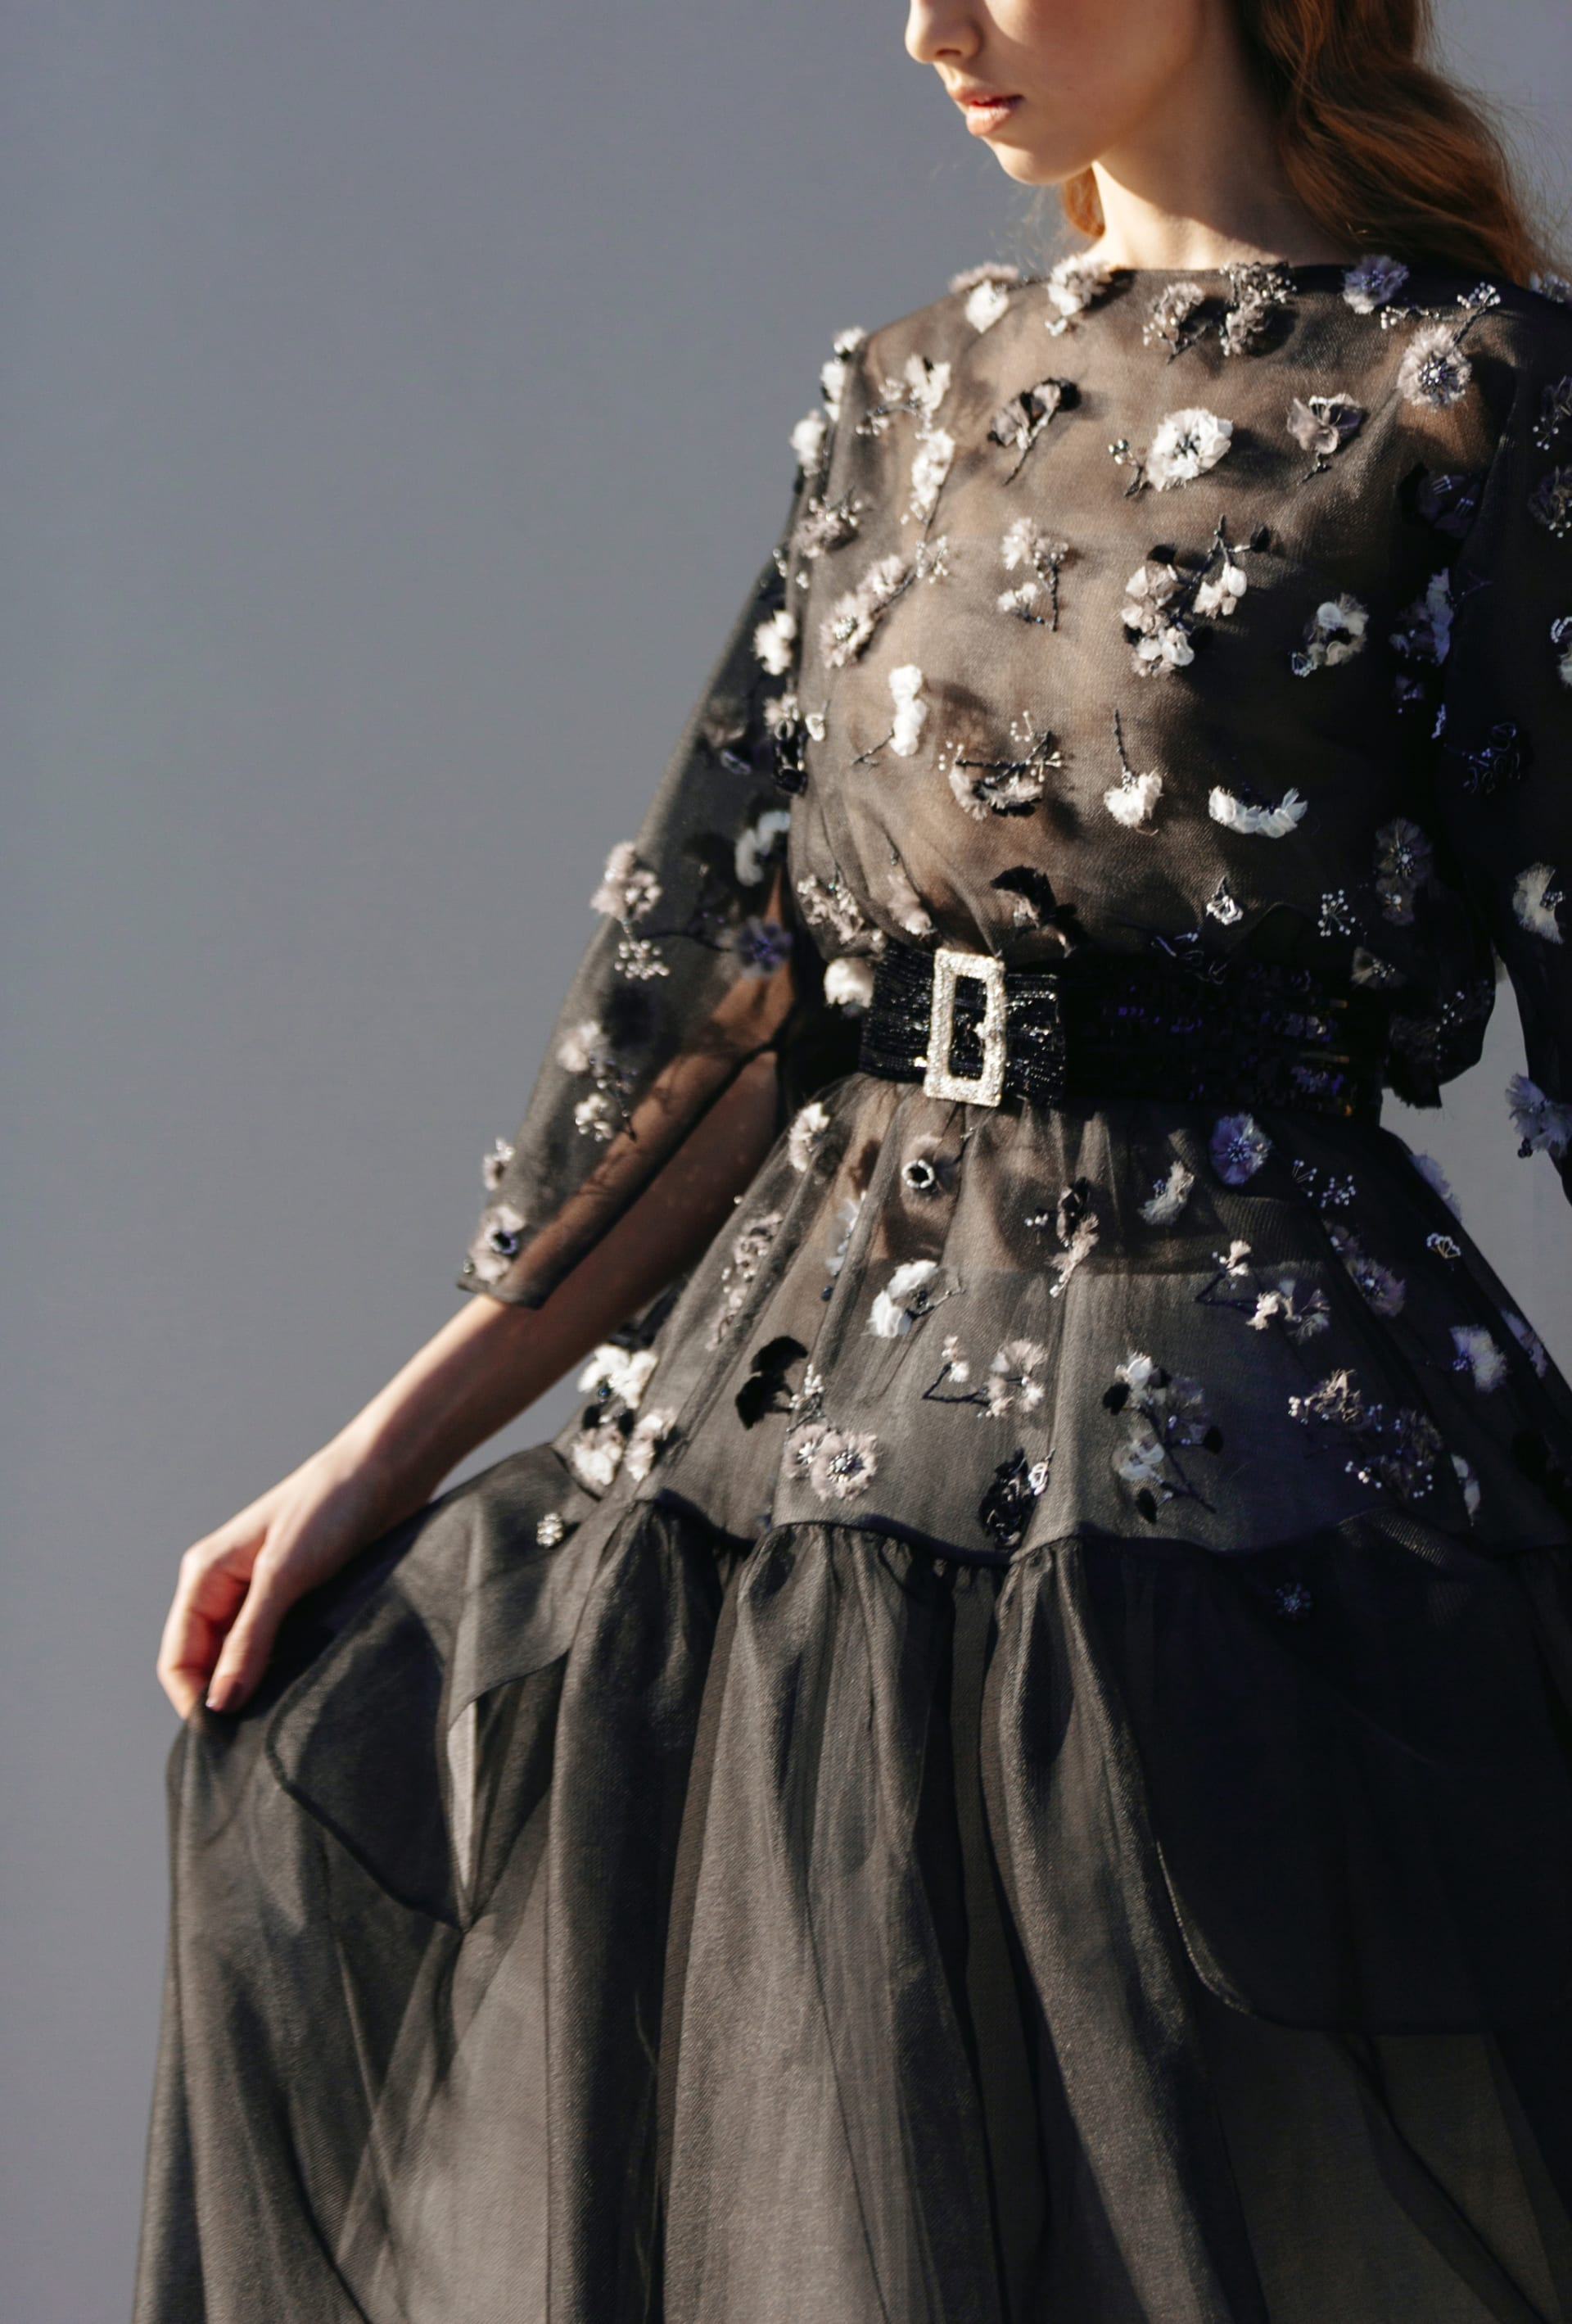 View 2 - Look 52 - Spring-Summer 2020 Haute Couture - see full sized version